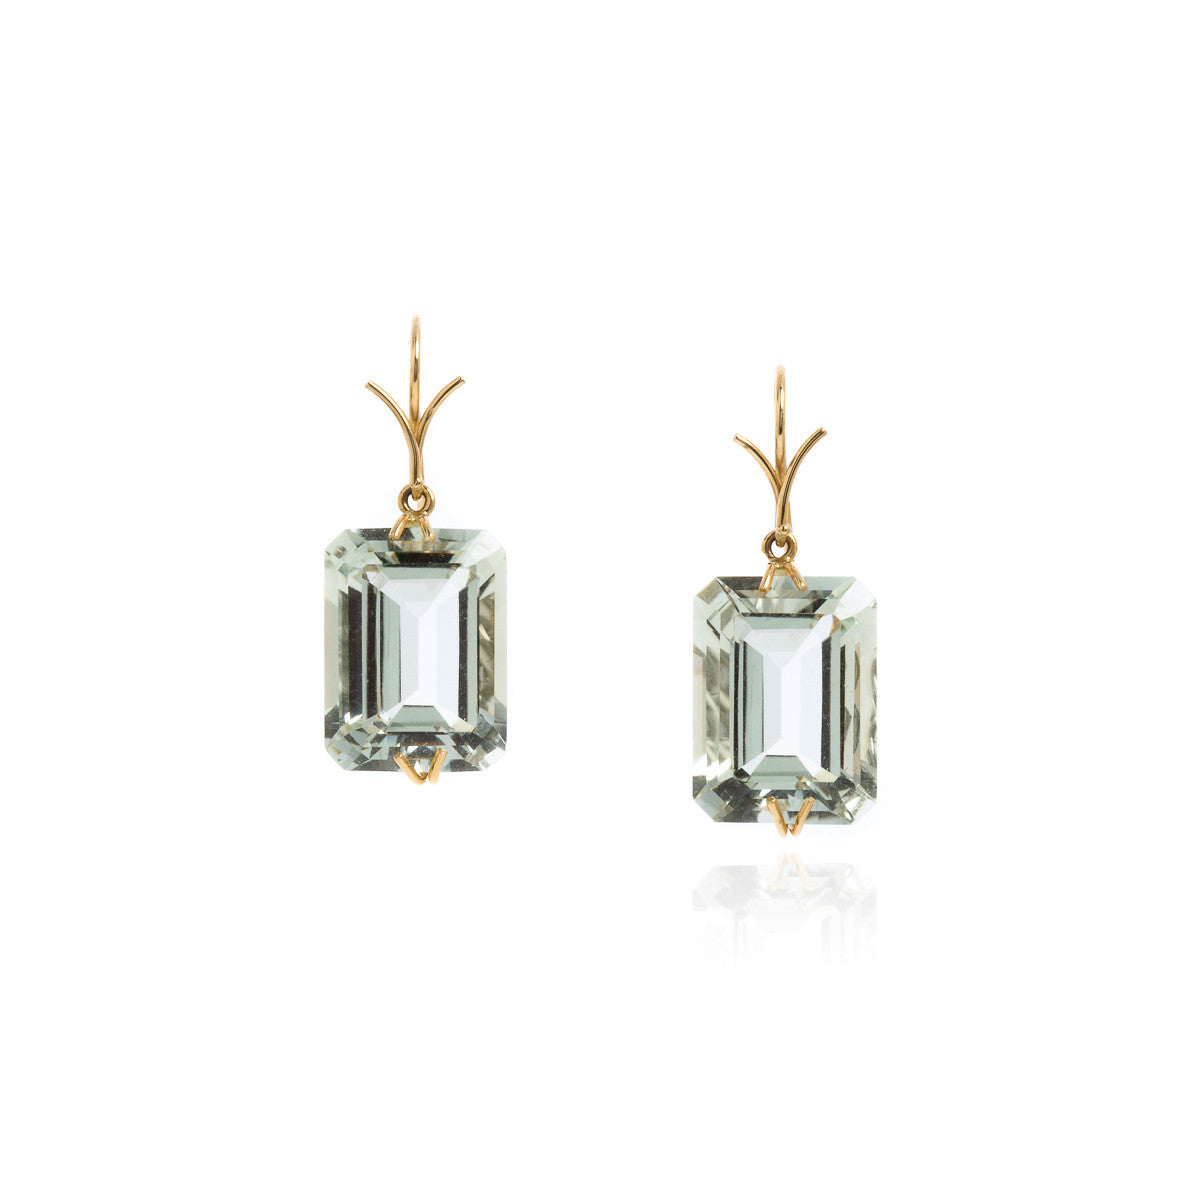 Green quartz emerald cut earrings